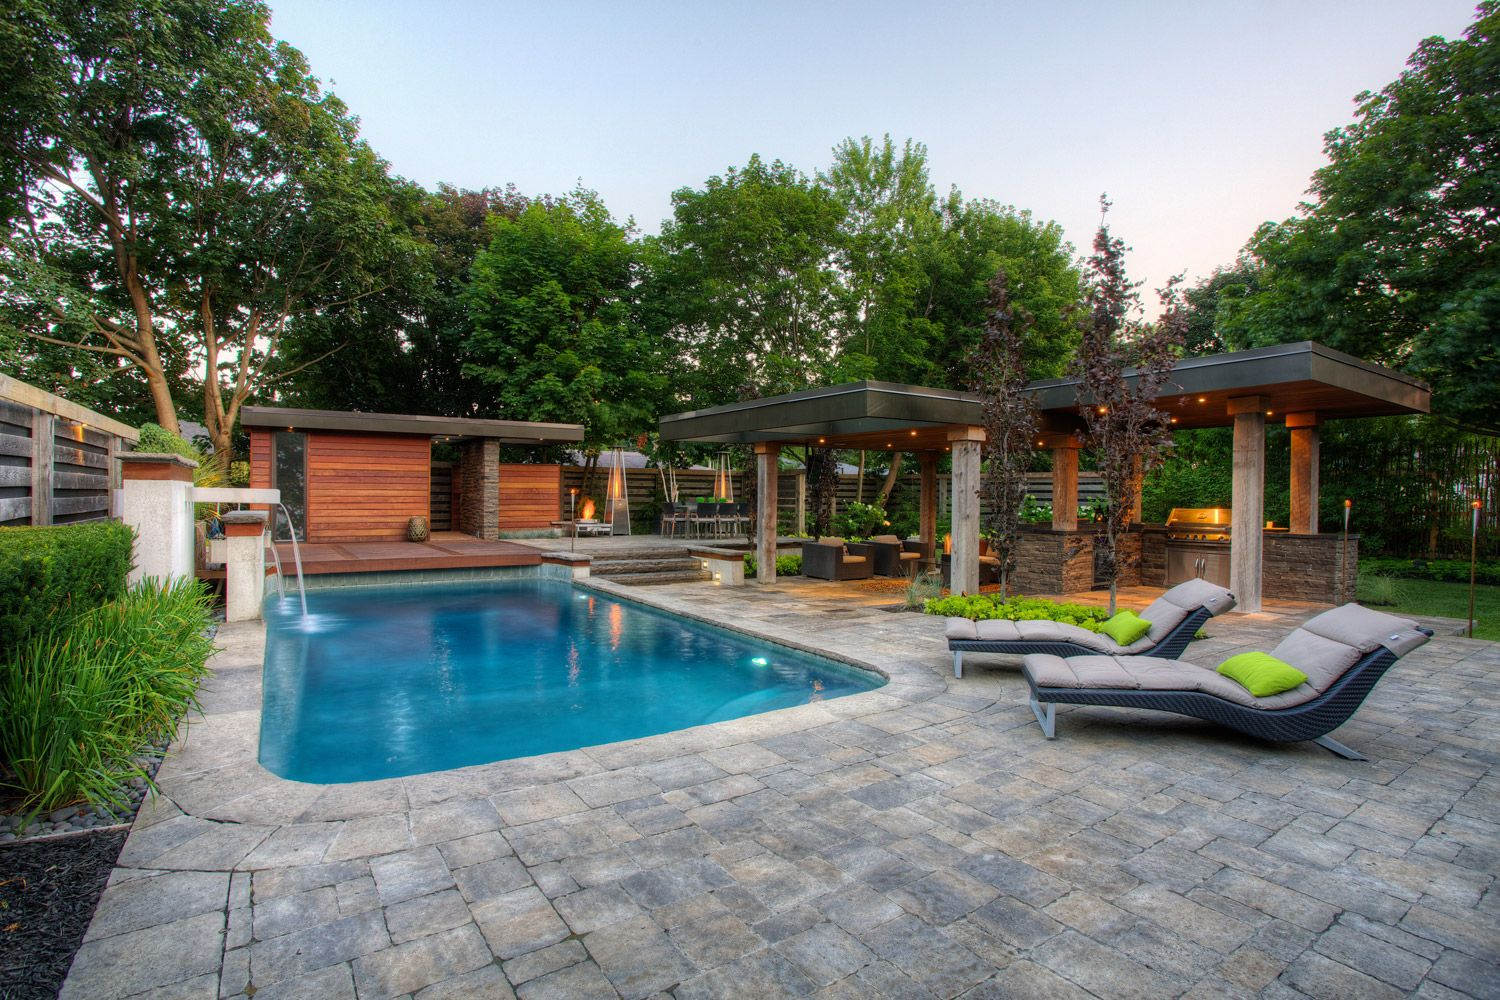 Toronto pool landscaping vaughan landscaping pool for Pool landscapes ideas pictures